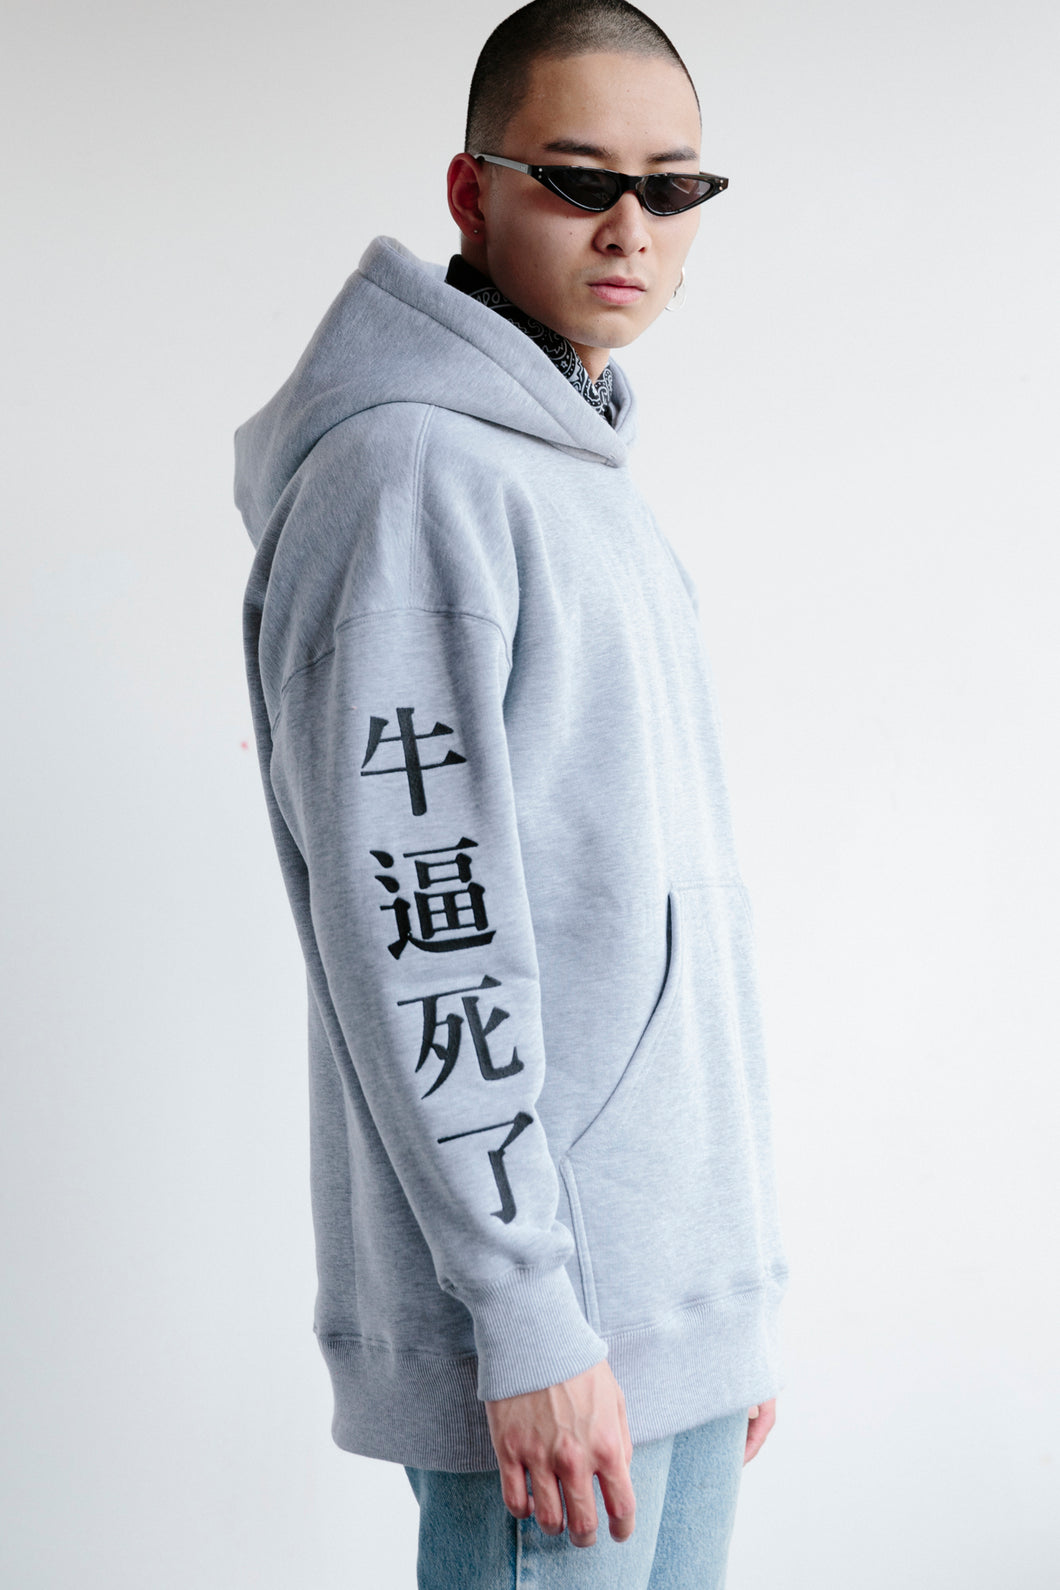 UNSPEAKABLE B HOODIE - SHARKFIN GREY